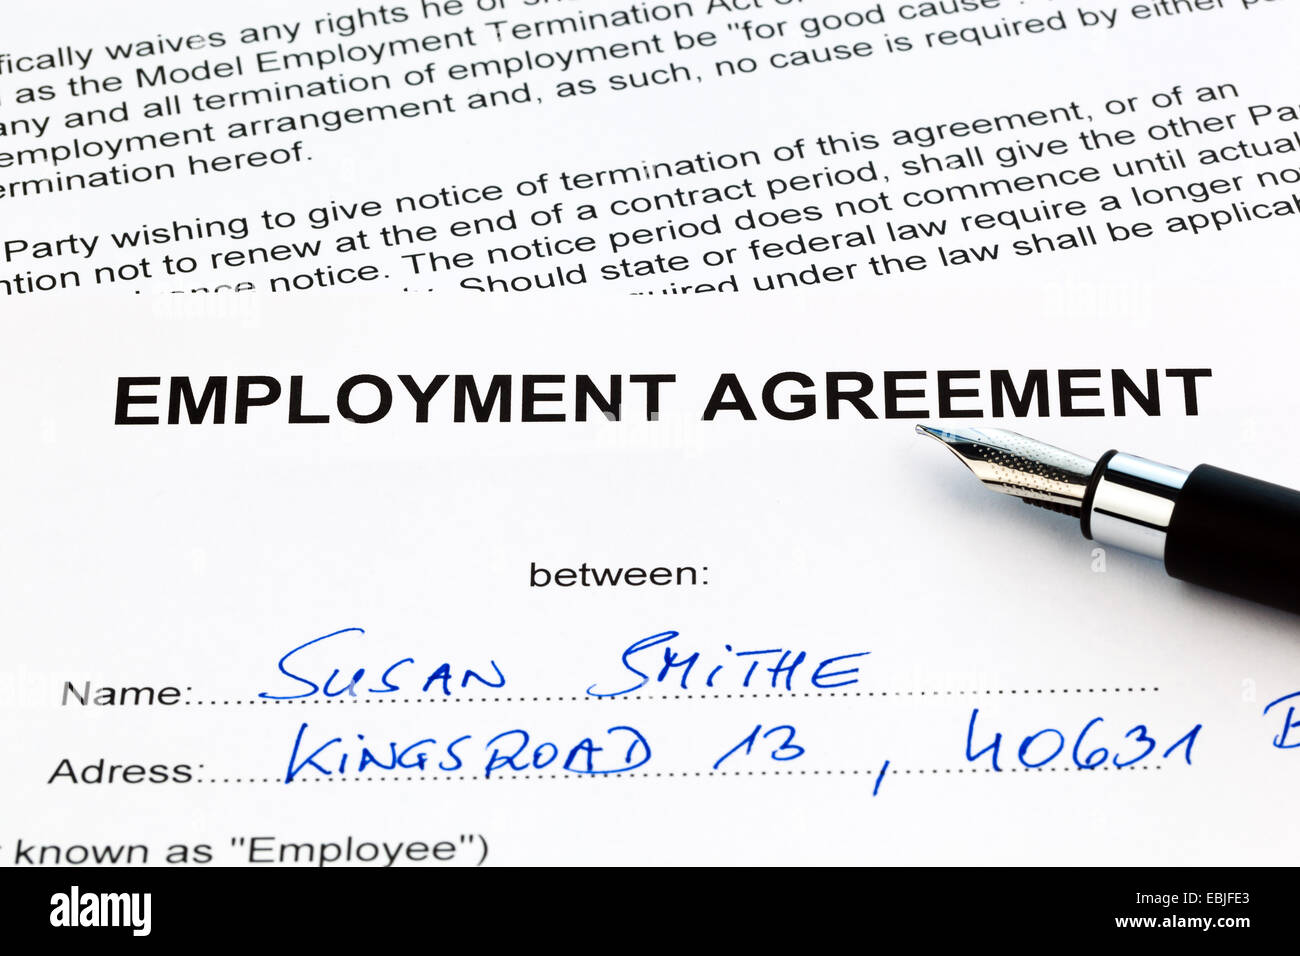 employment contract of an employee the employer in english stock photo employment contract of an employee the employer in english being filled in